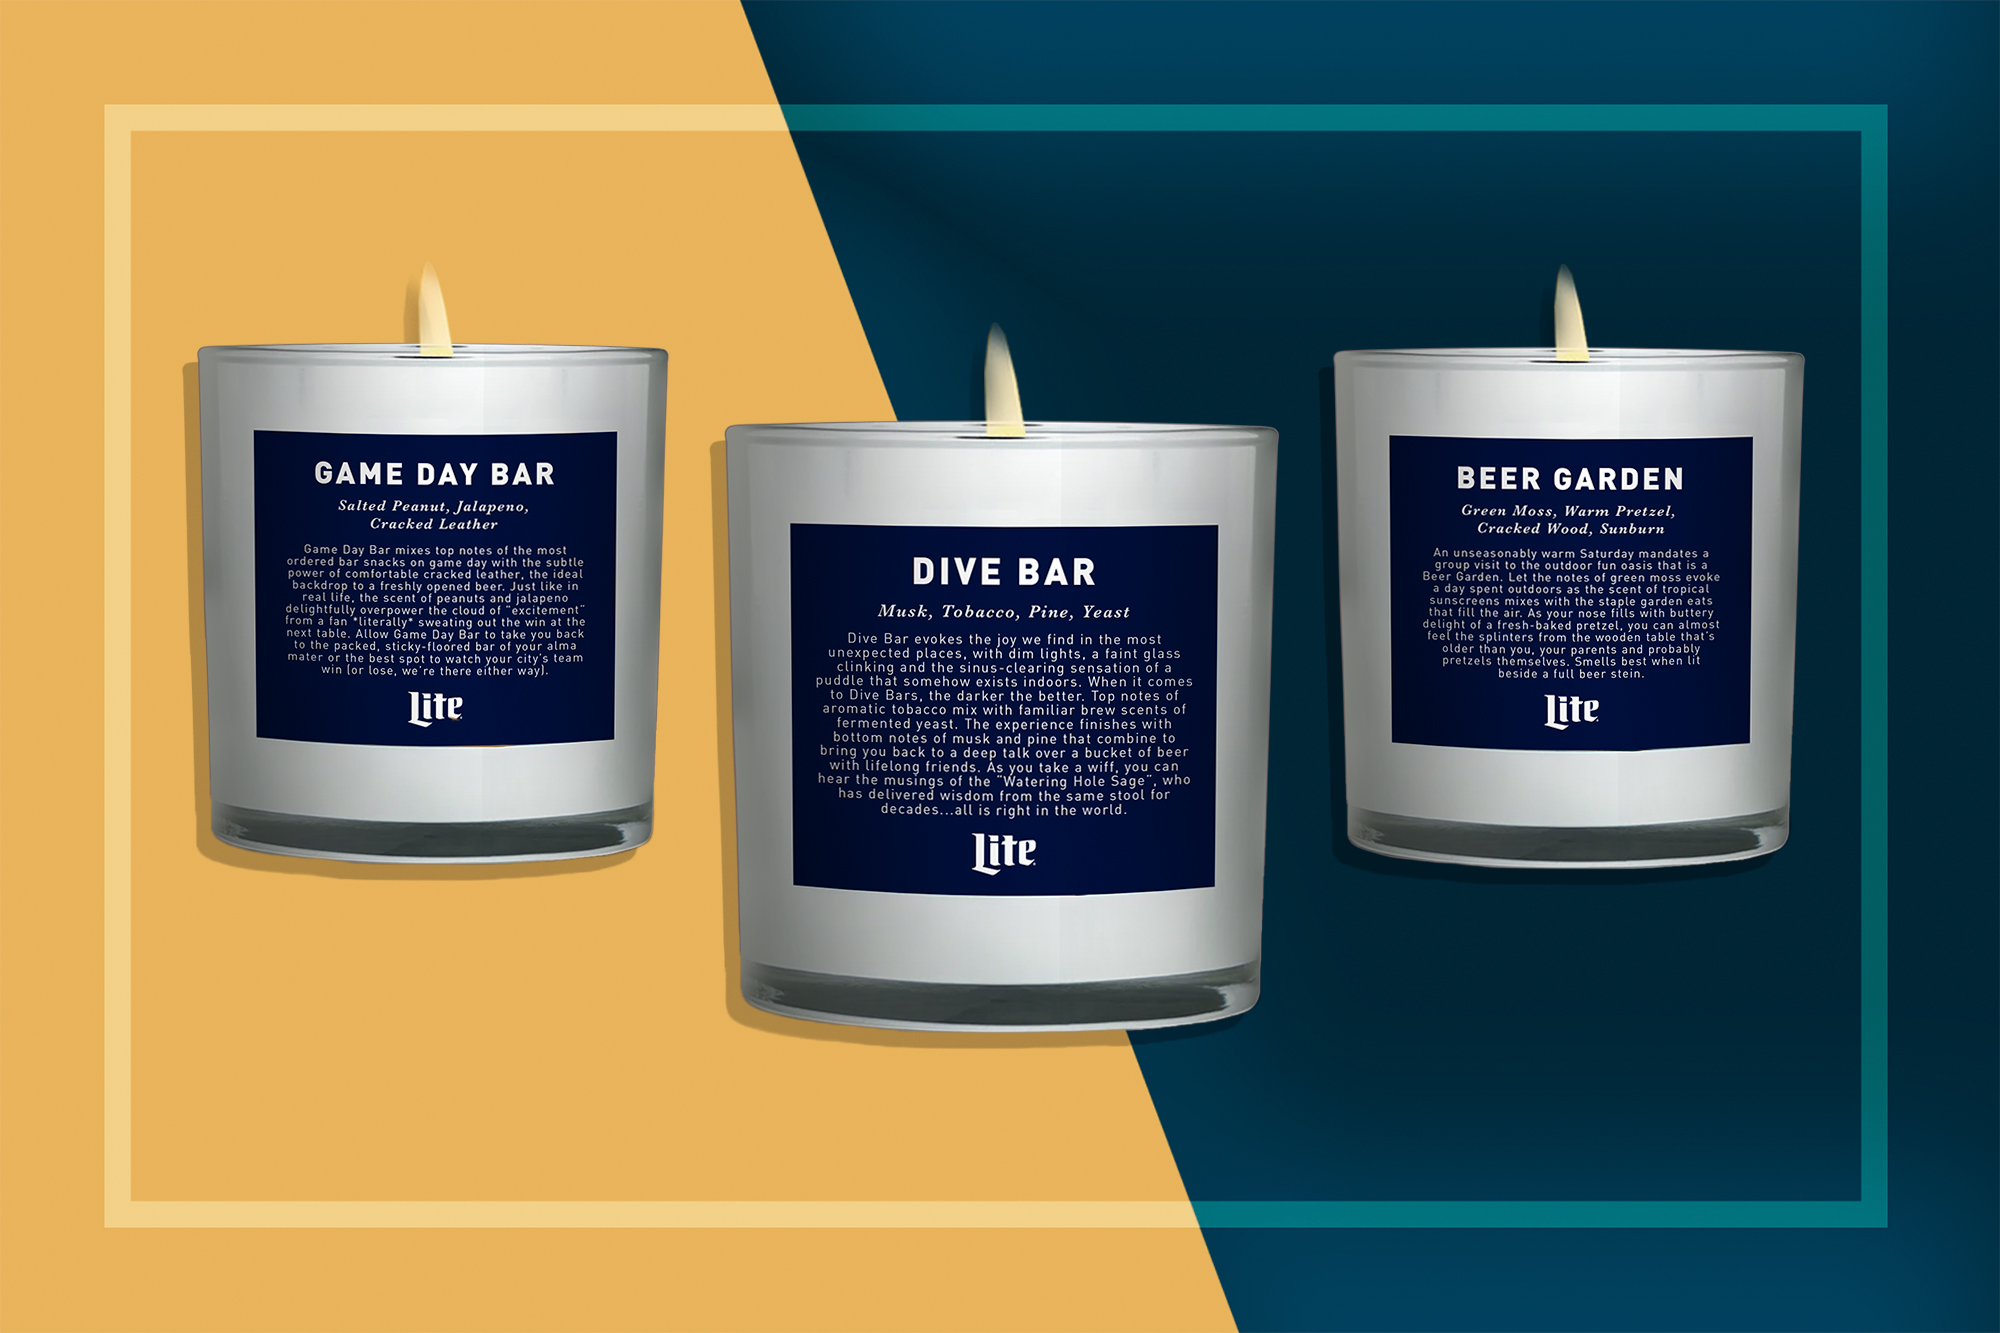 Dive Bar, Game Day Bar, and Beer Garden Scented Candles by Miller Lite